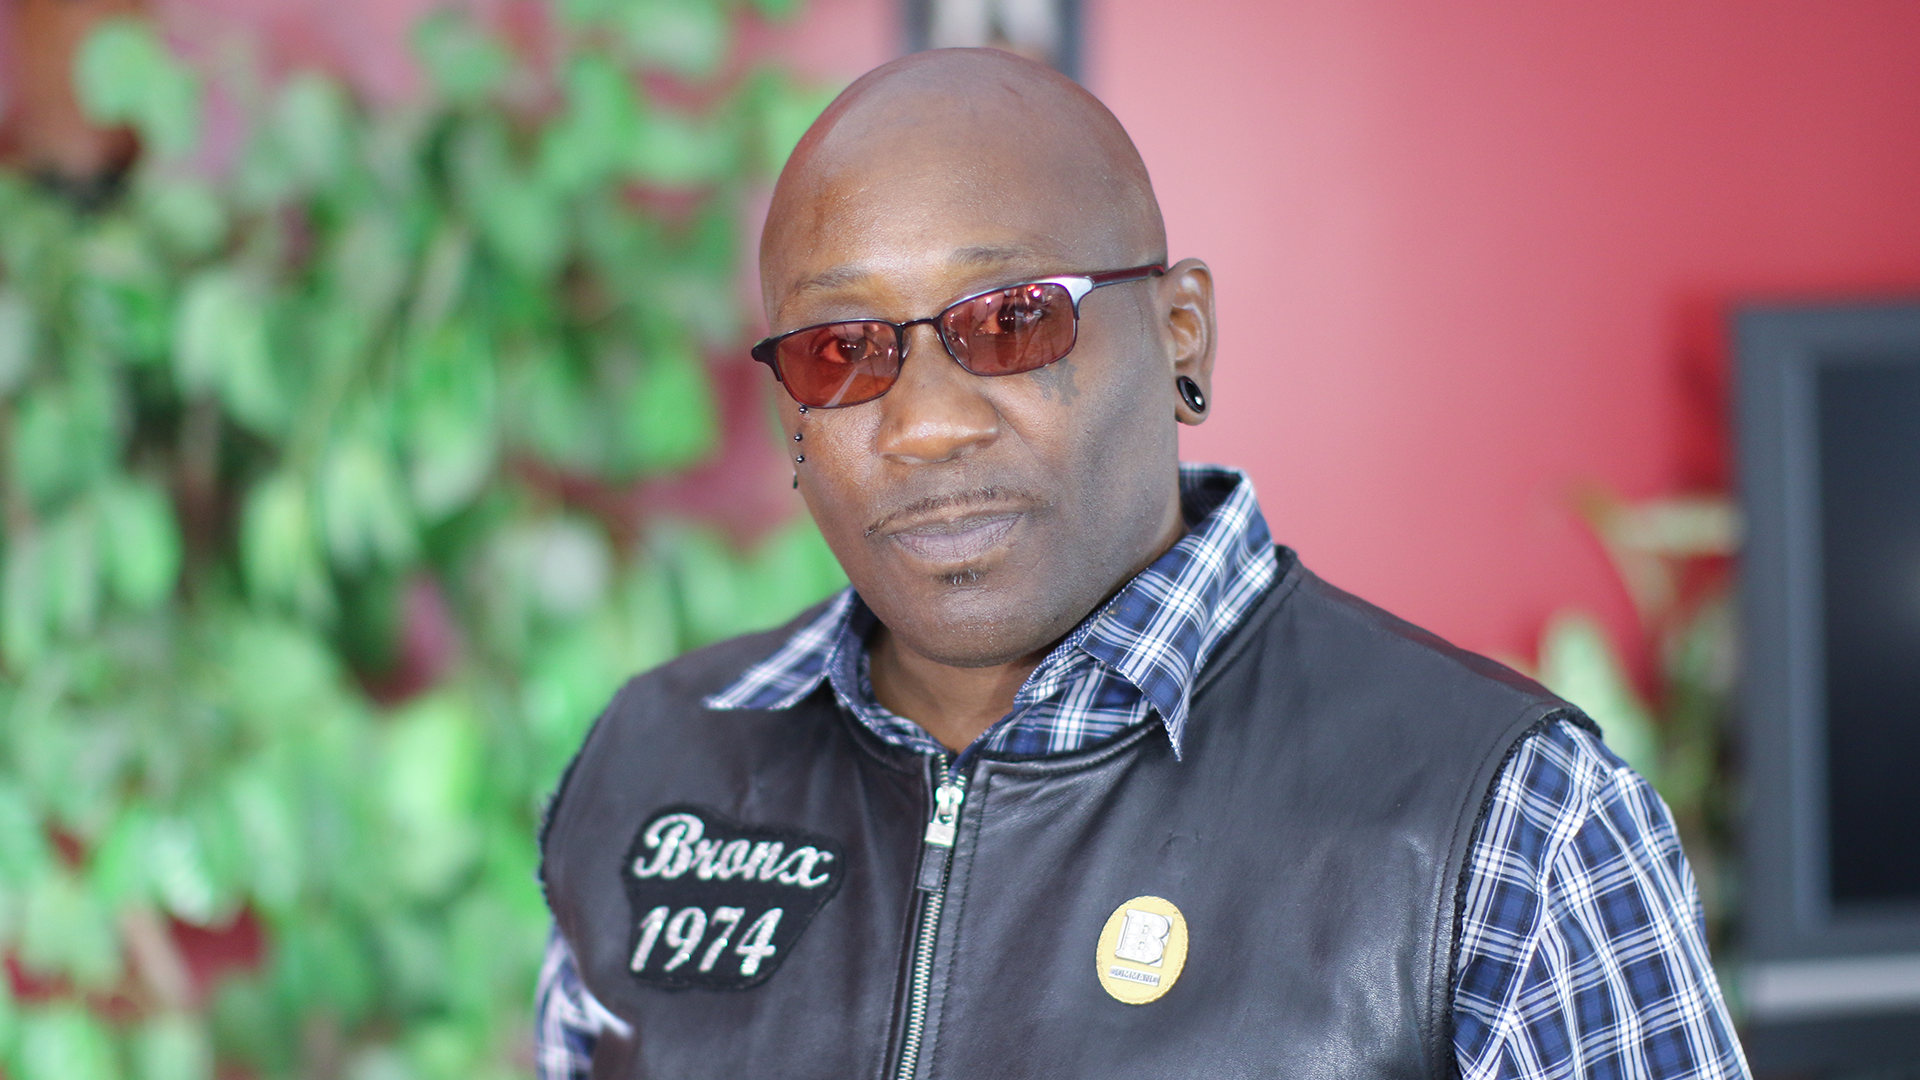 M.C. El Bee: The Knowledge of Hip-Hop Needs to Be Restored — Photo Credit: Shefik